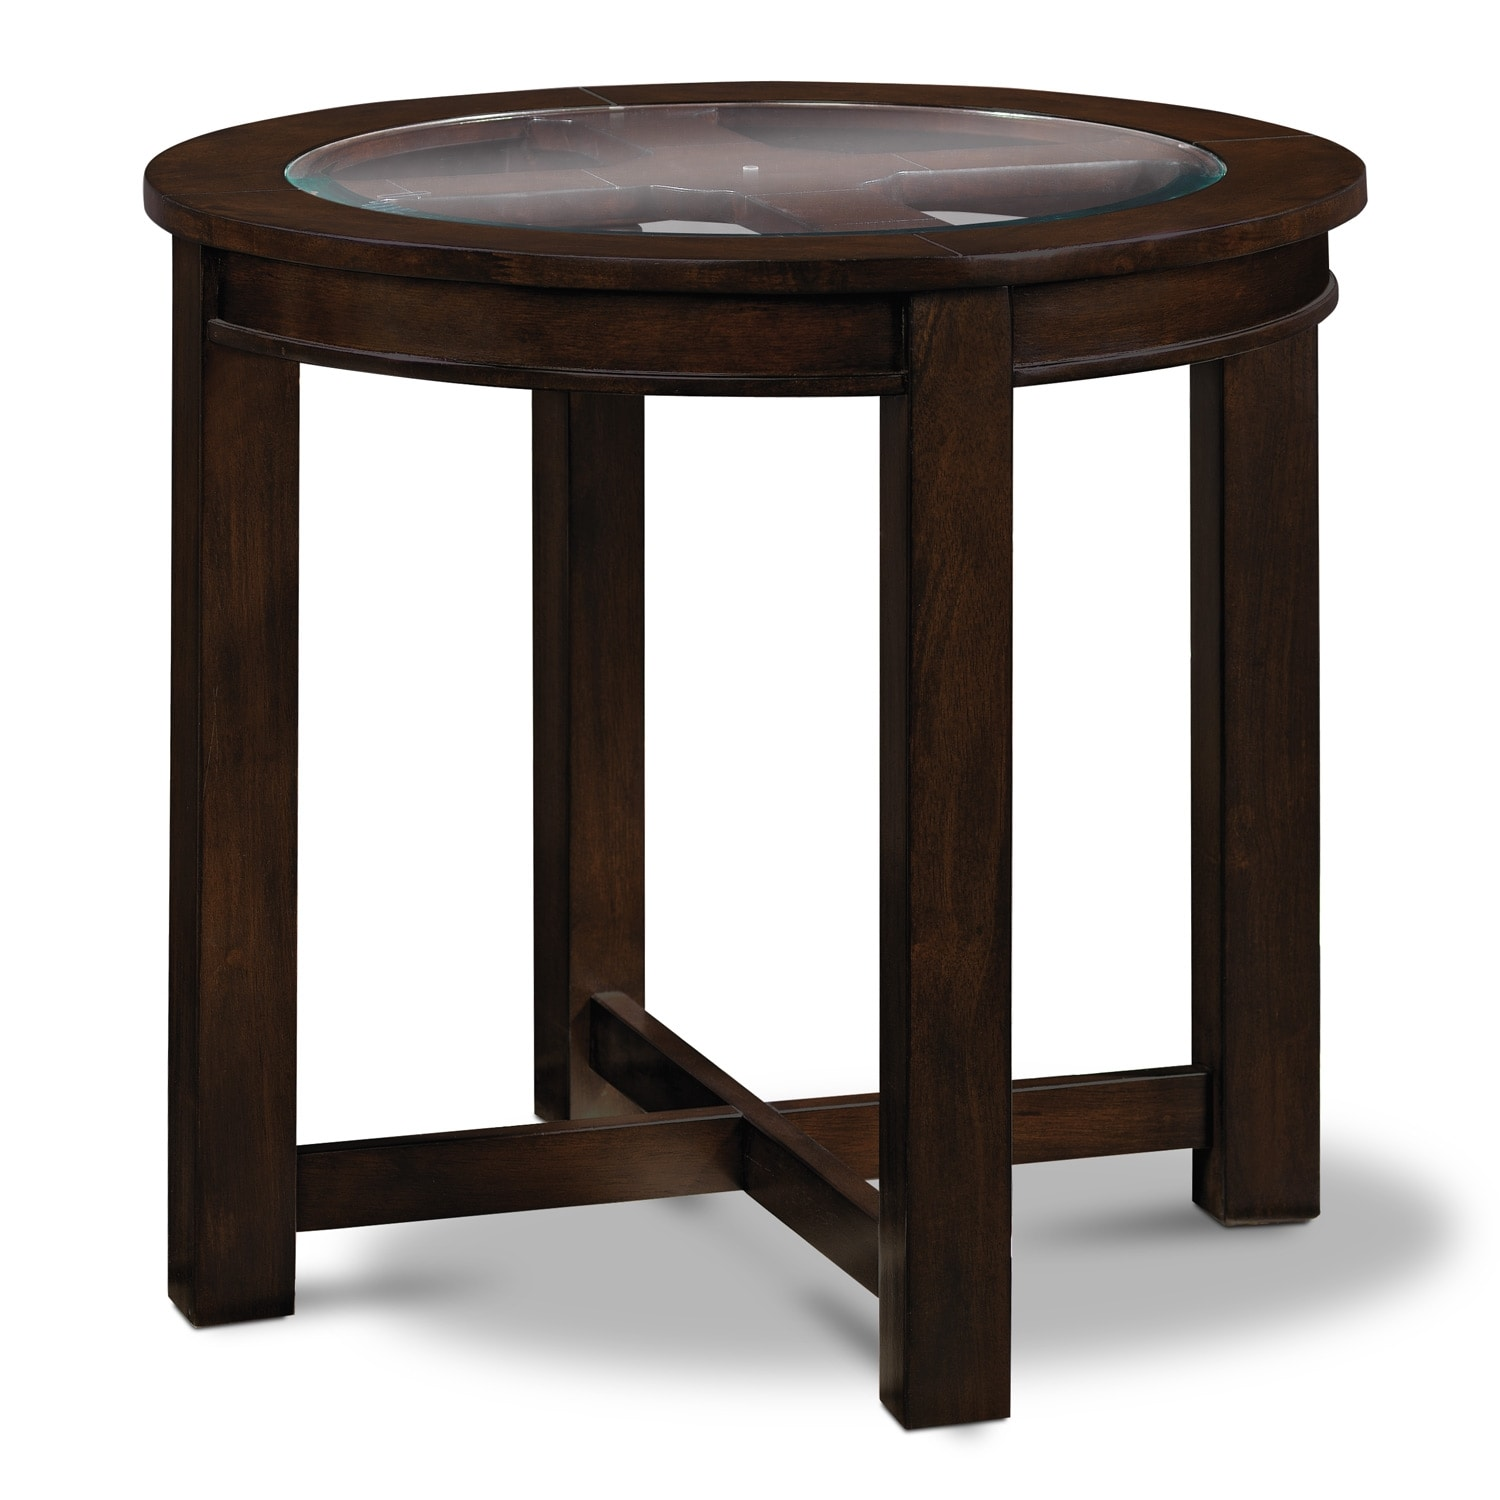 Accent and Occasional Furniture - Intervale End Table